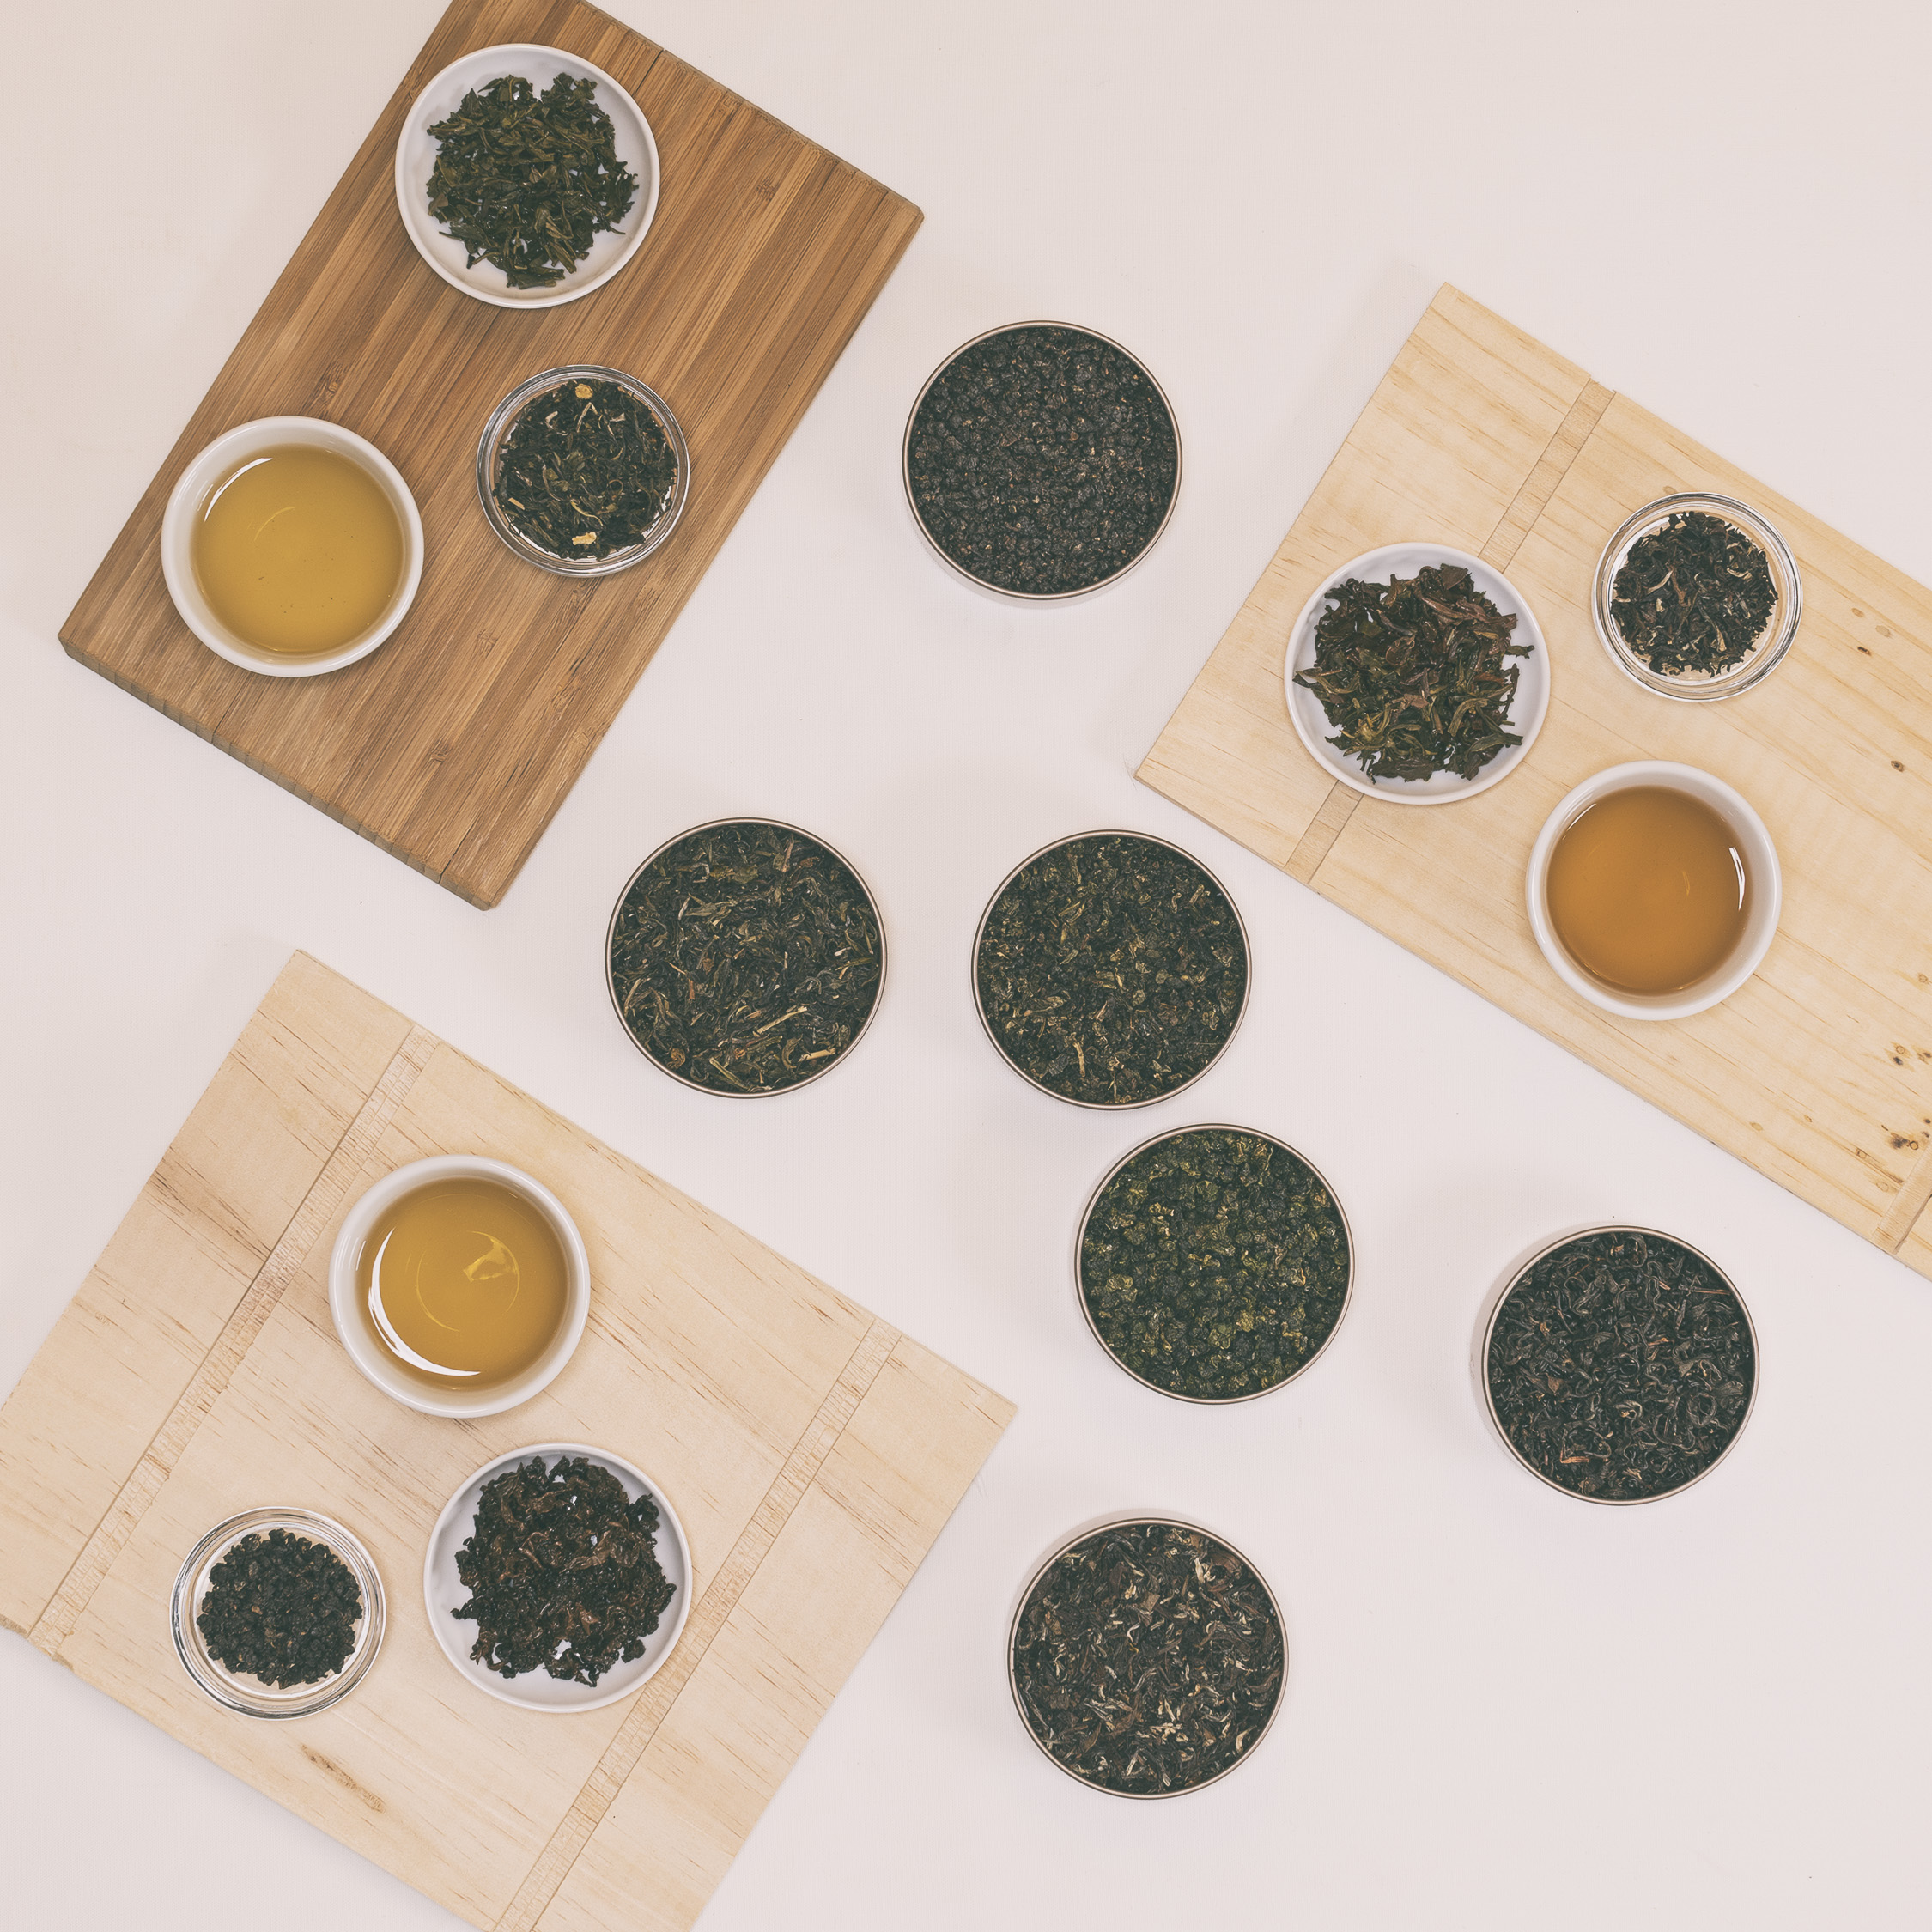 OOLONG COLLECTION